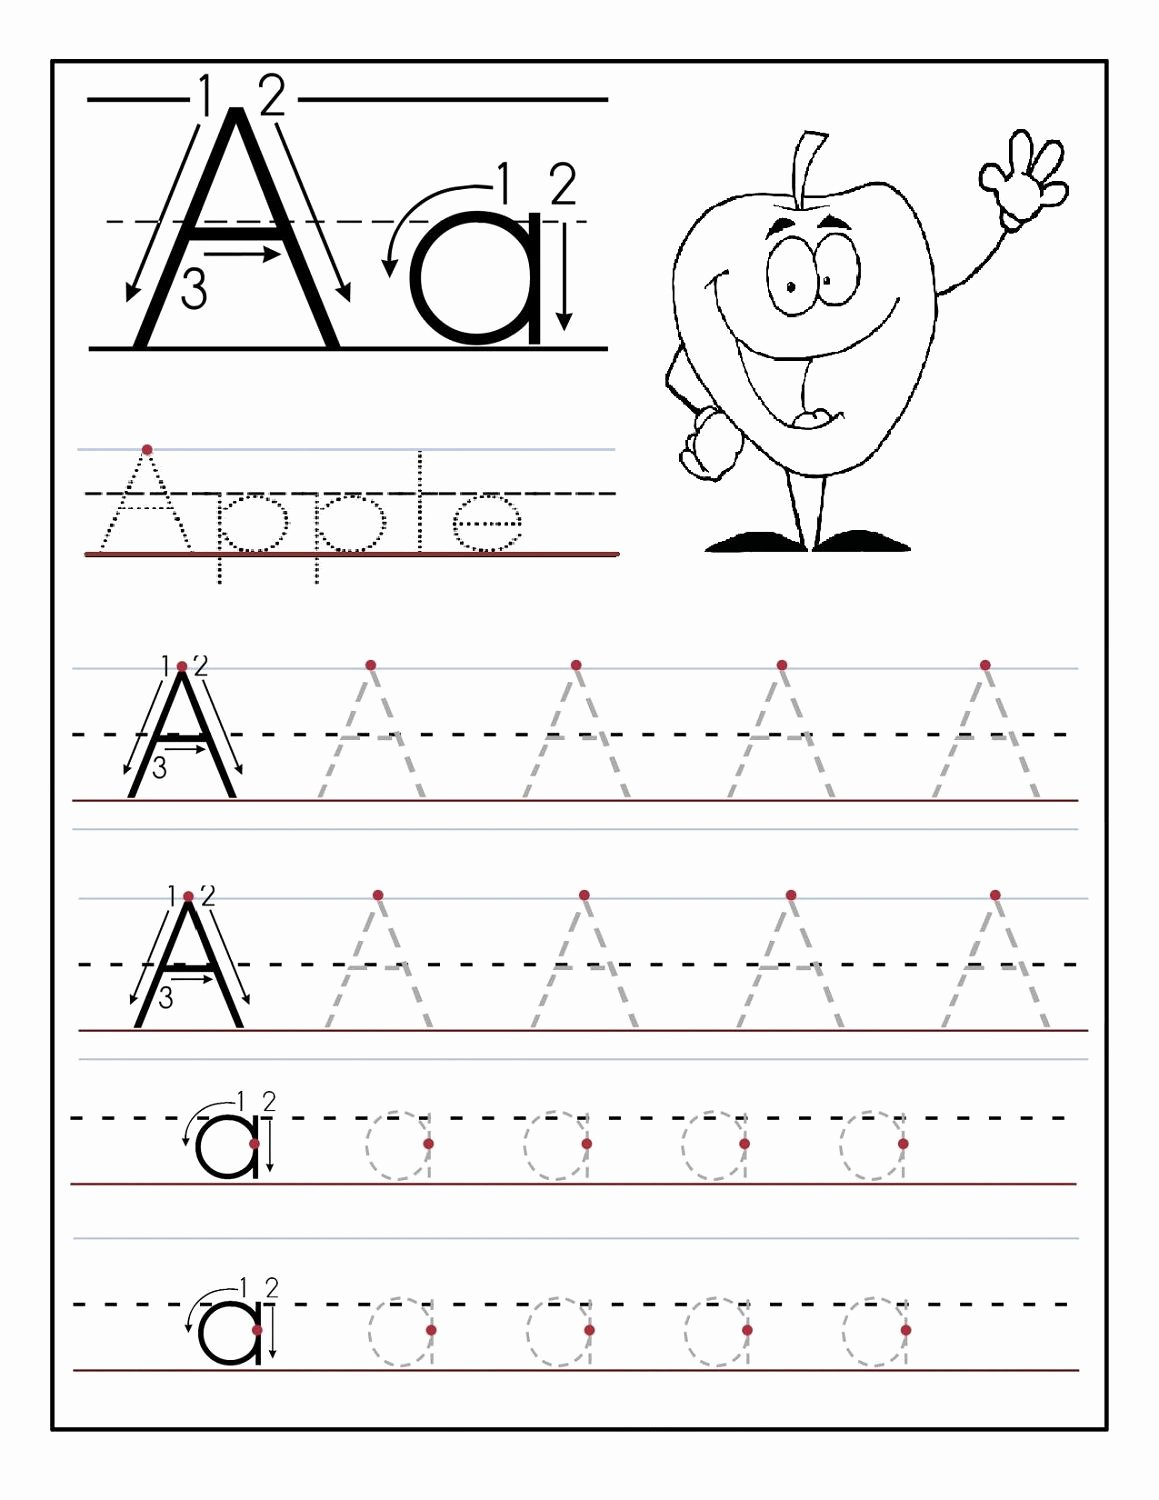 Tracing Letter Worksheets for Preschoolers top Trace Letter A Sheets to Print